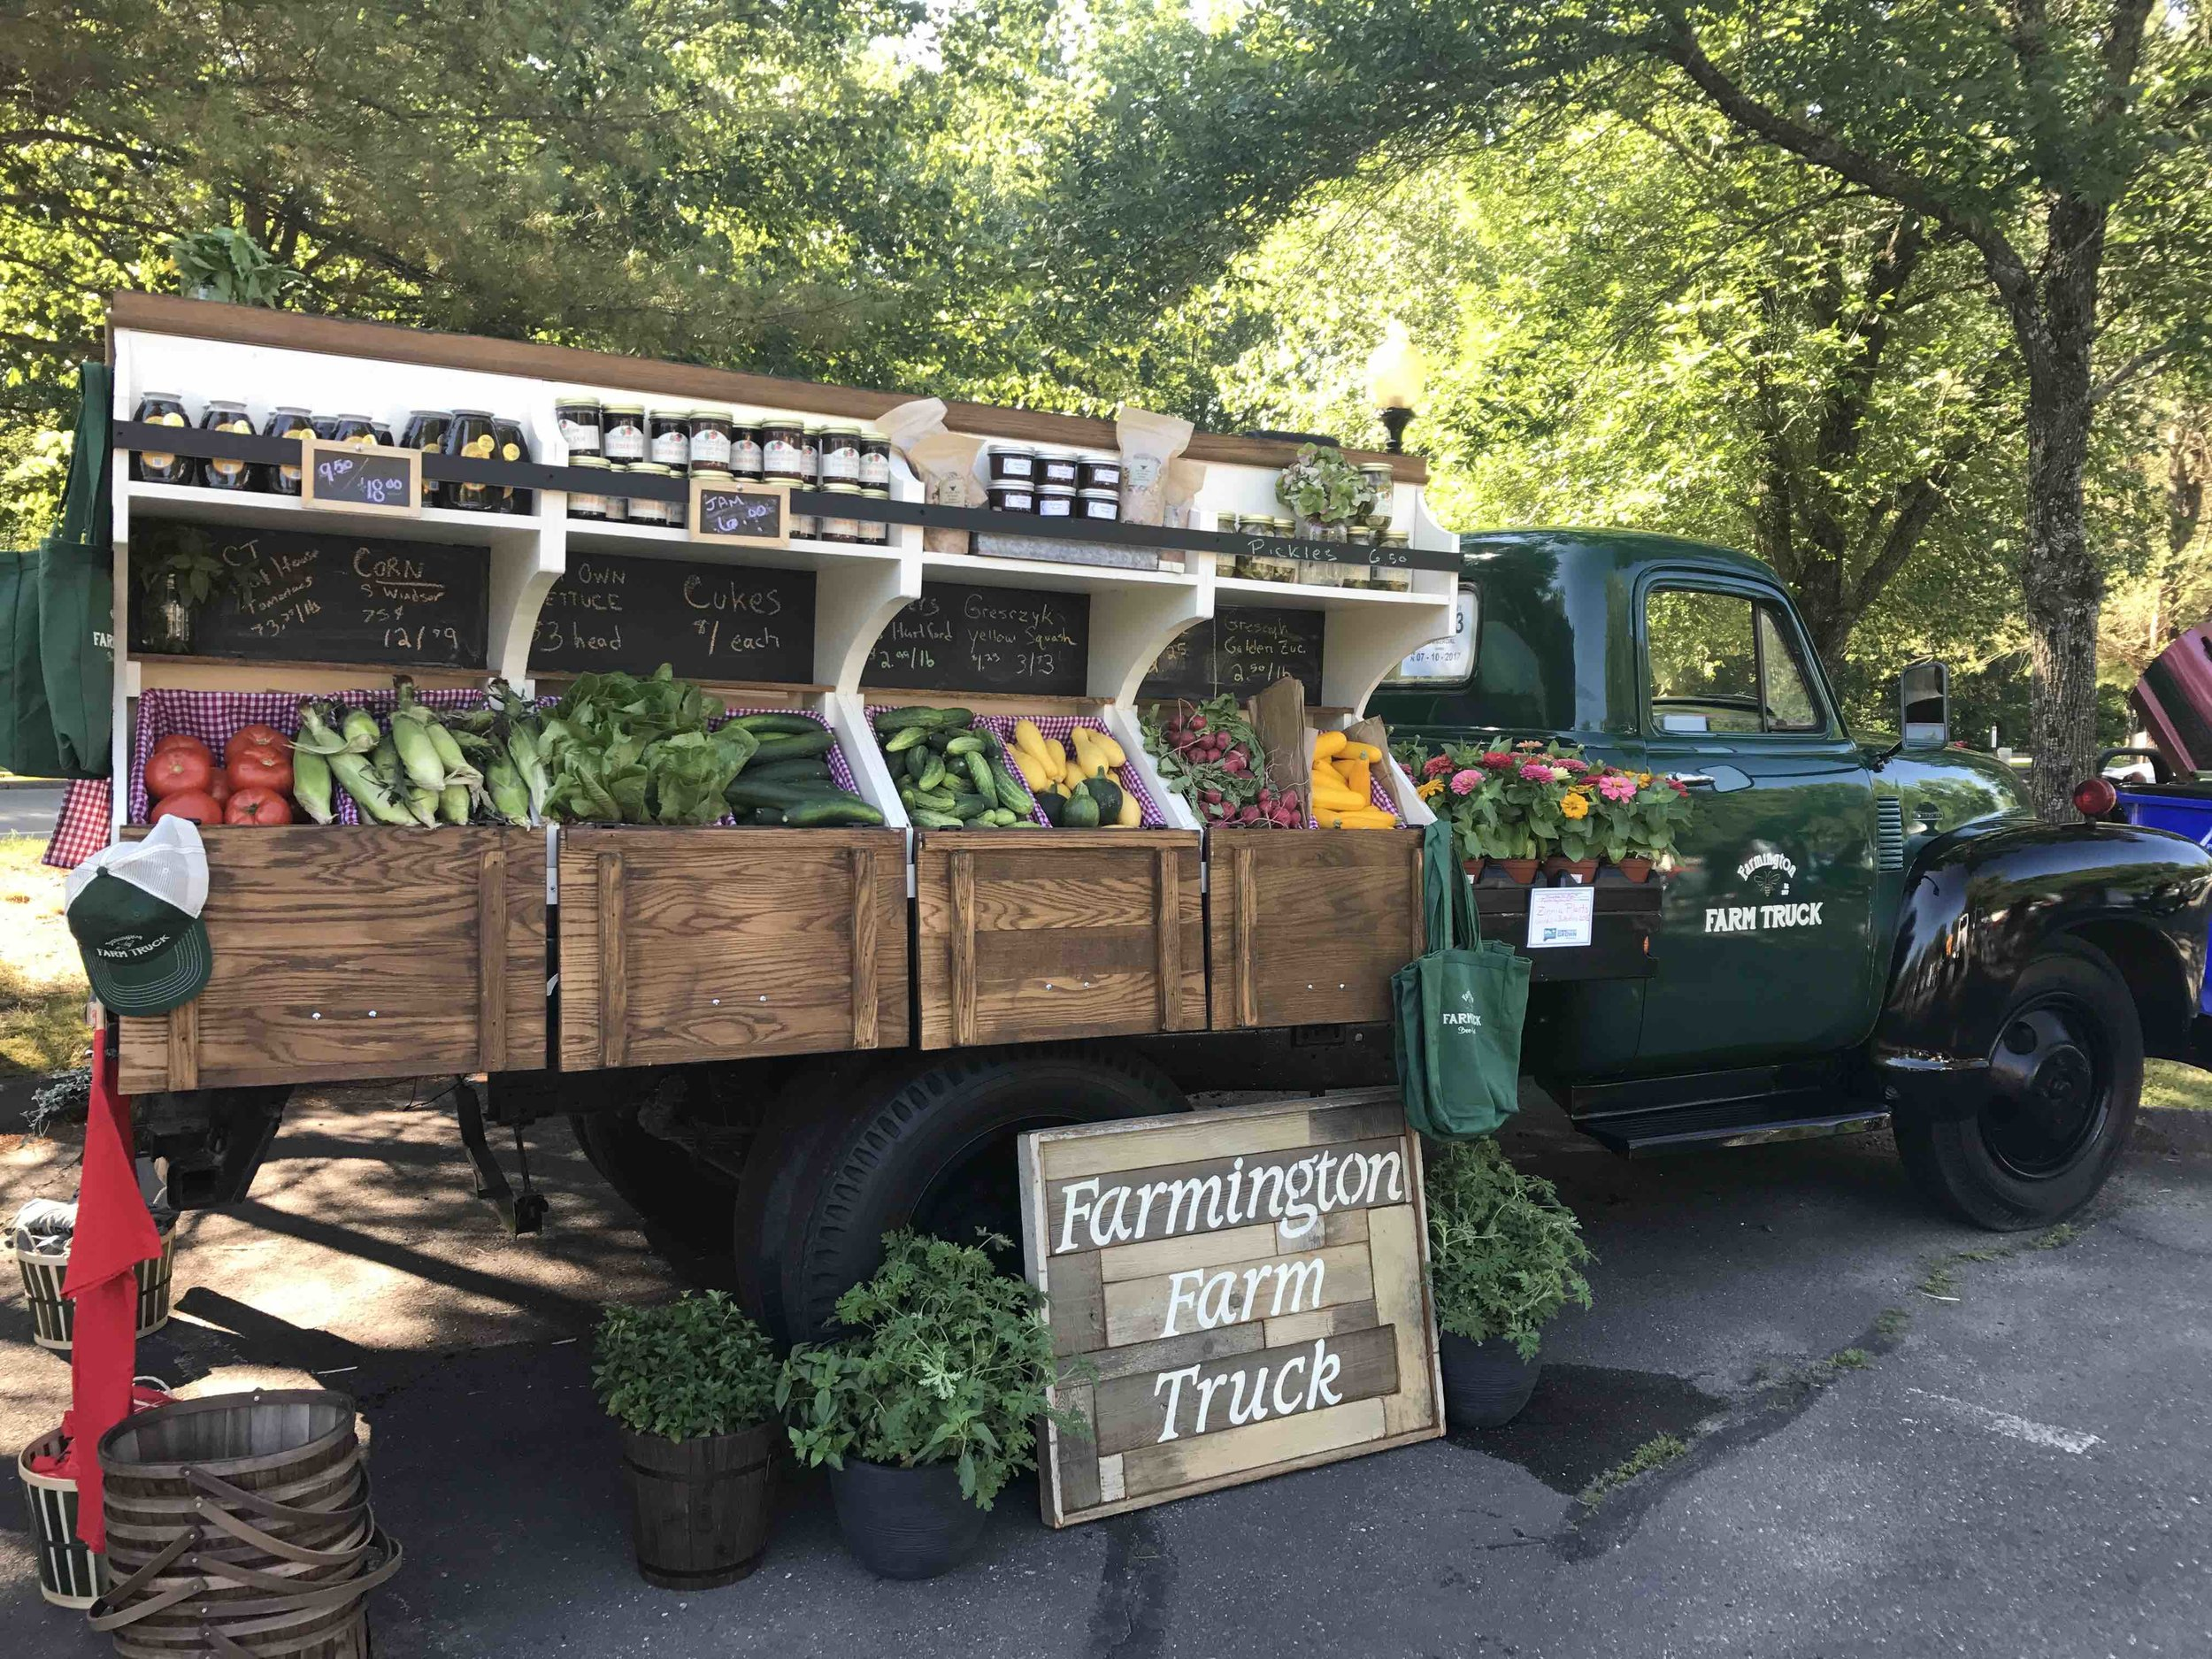 Locally Made Farm Goodies from Farmington Farm Truck